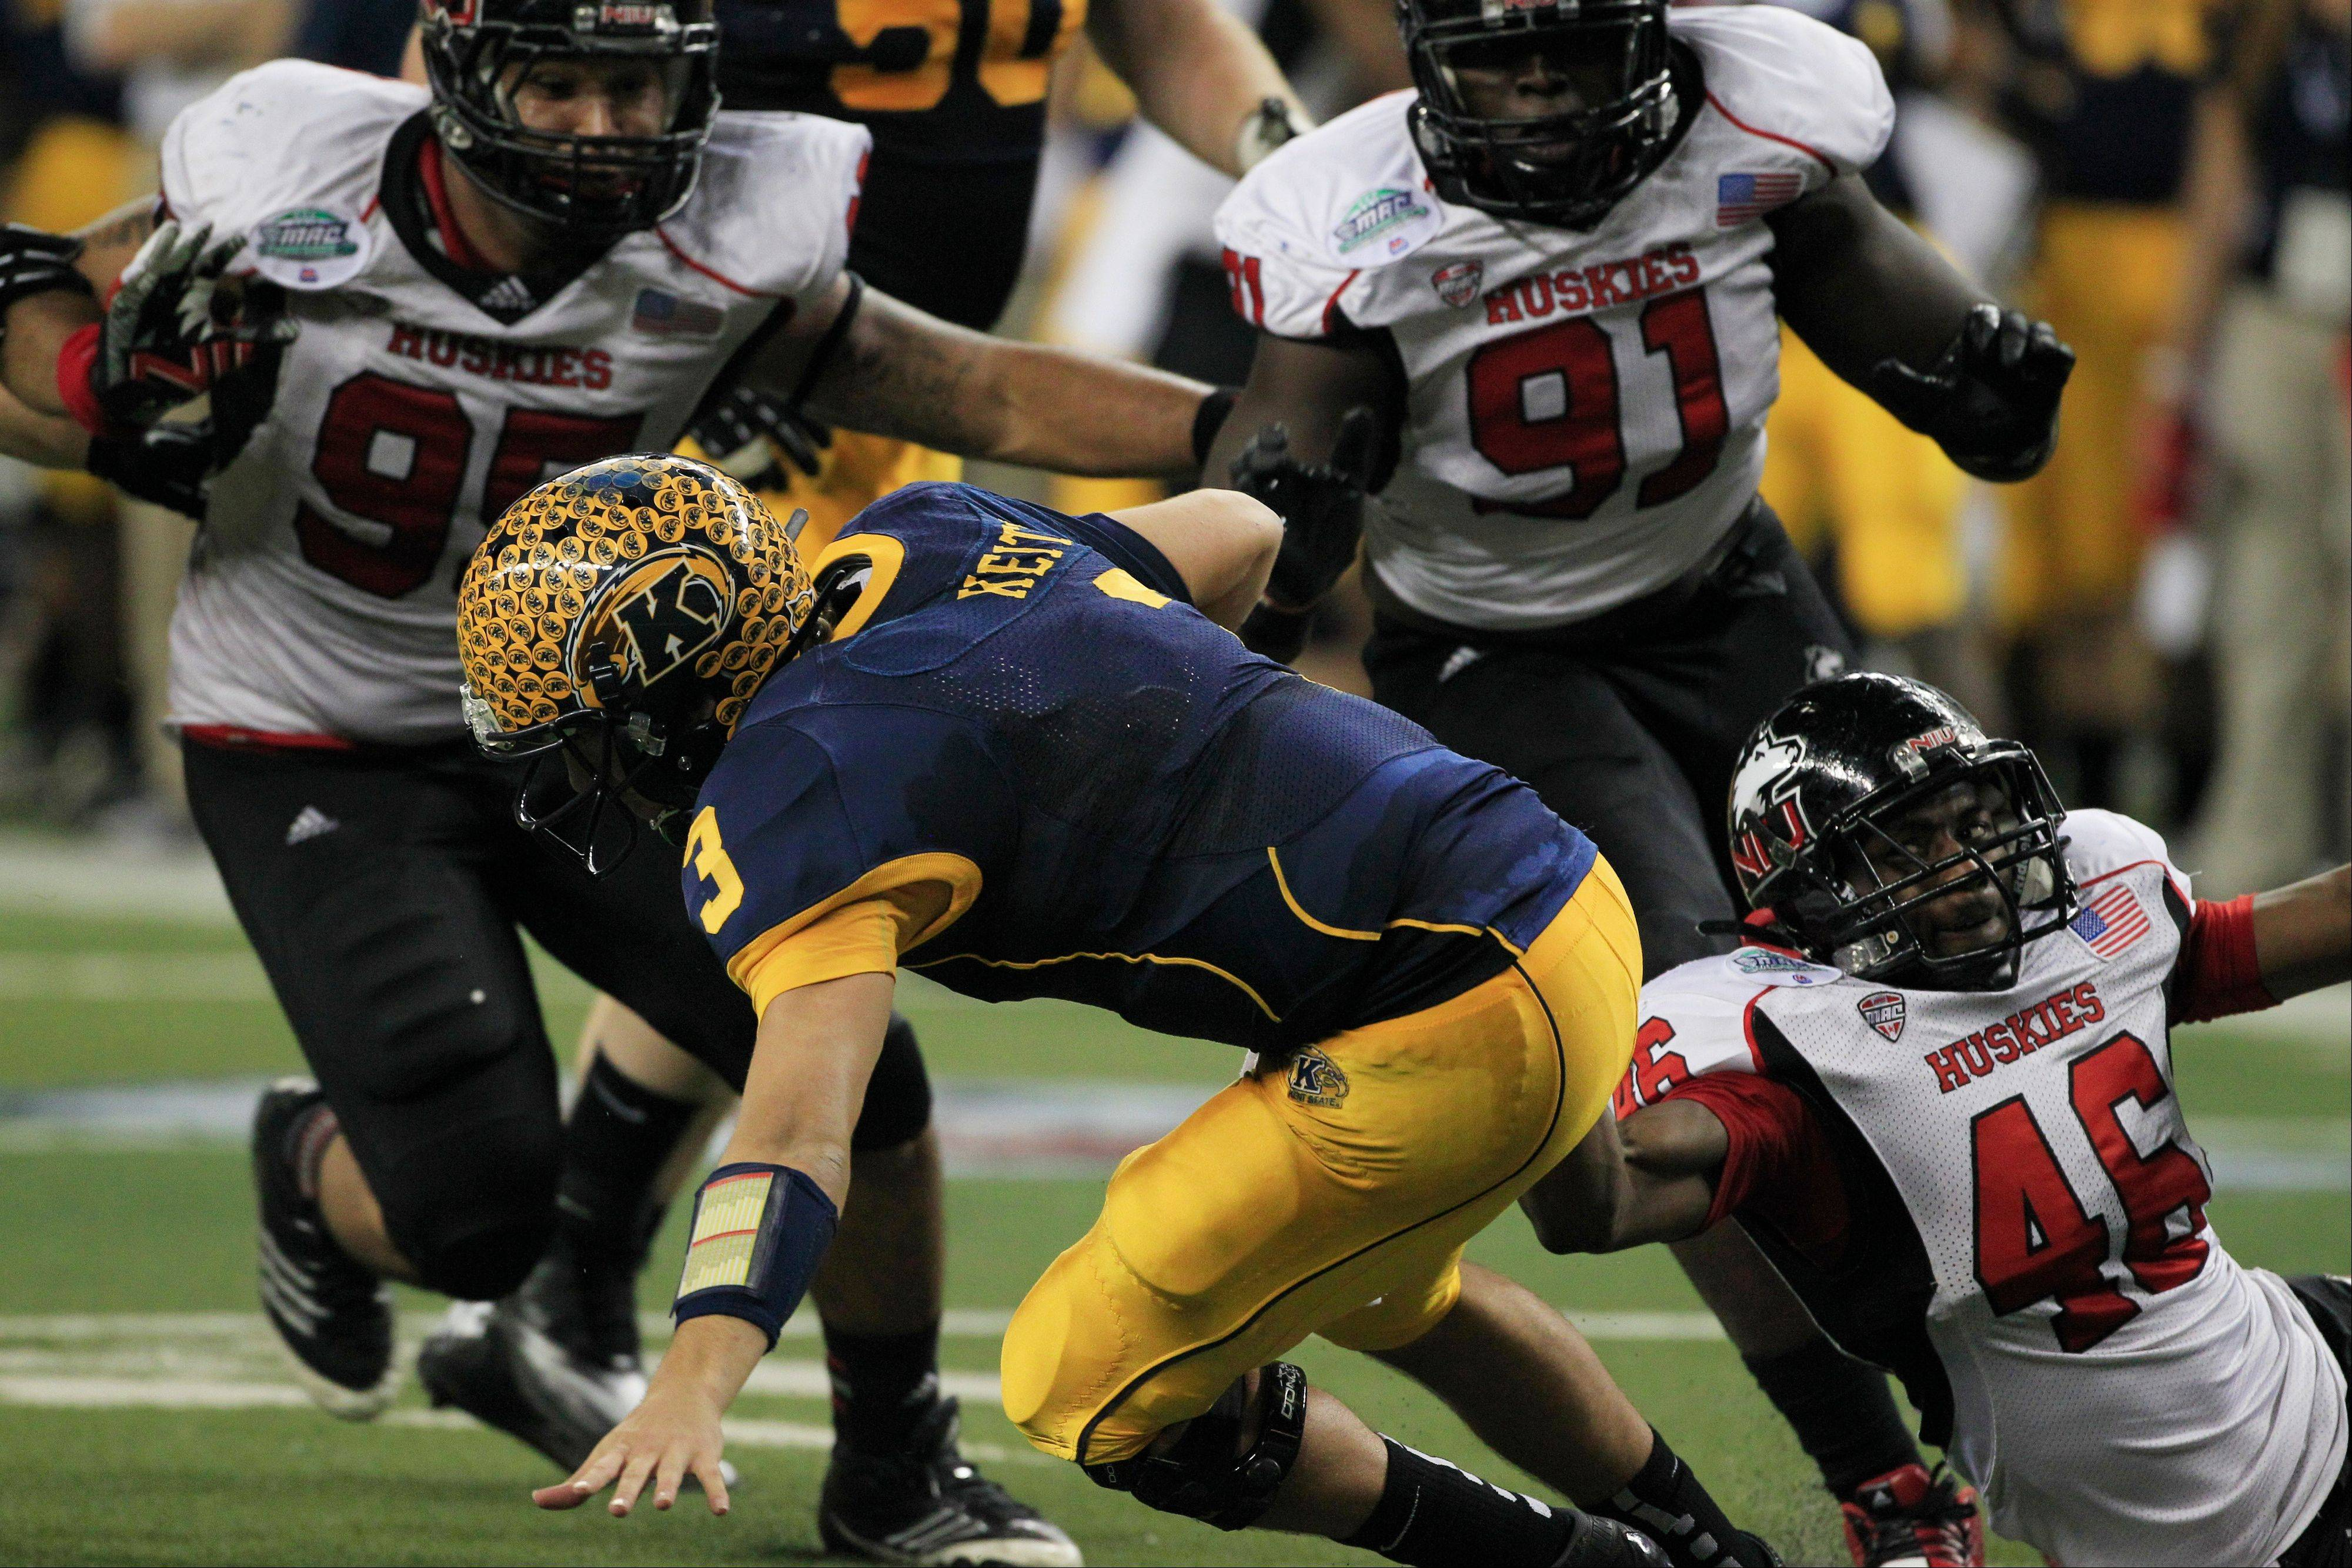 Kent State quarterback Spencer Keith is sacked by Northern Illinois defensive end George Rainey (46) Friday during the third quarter.